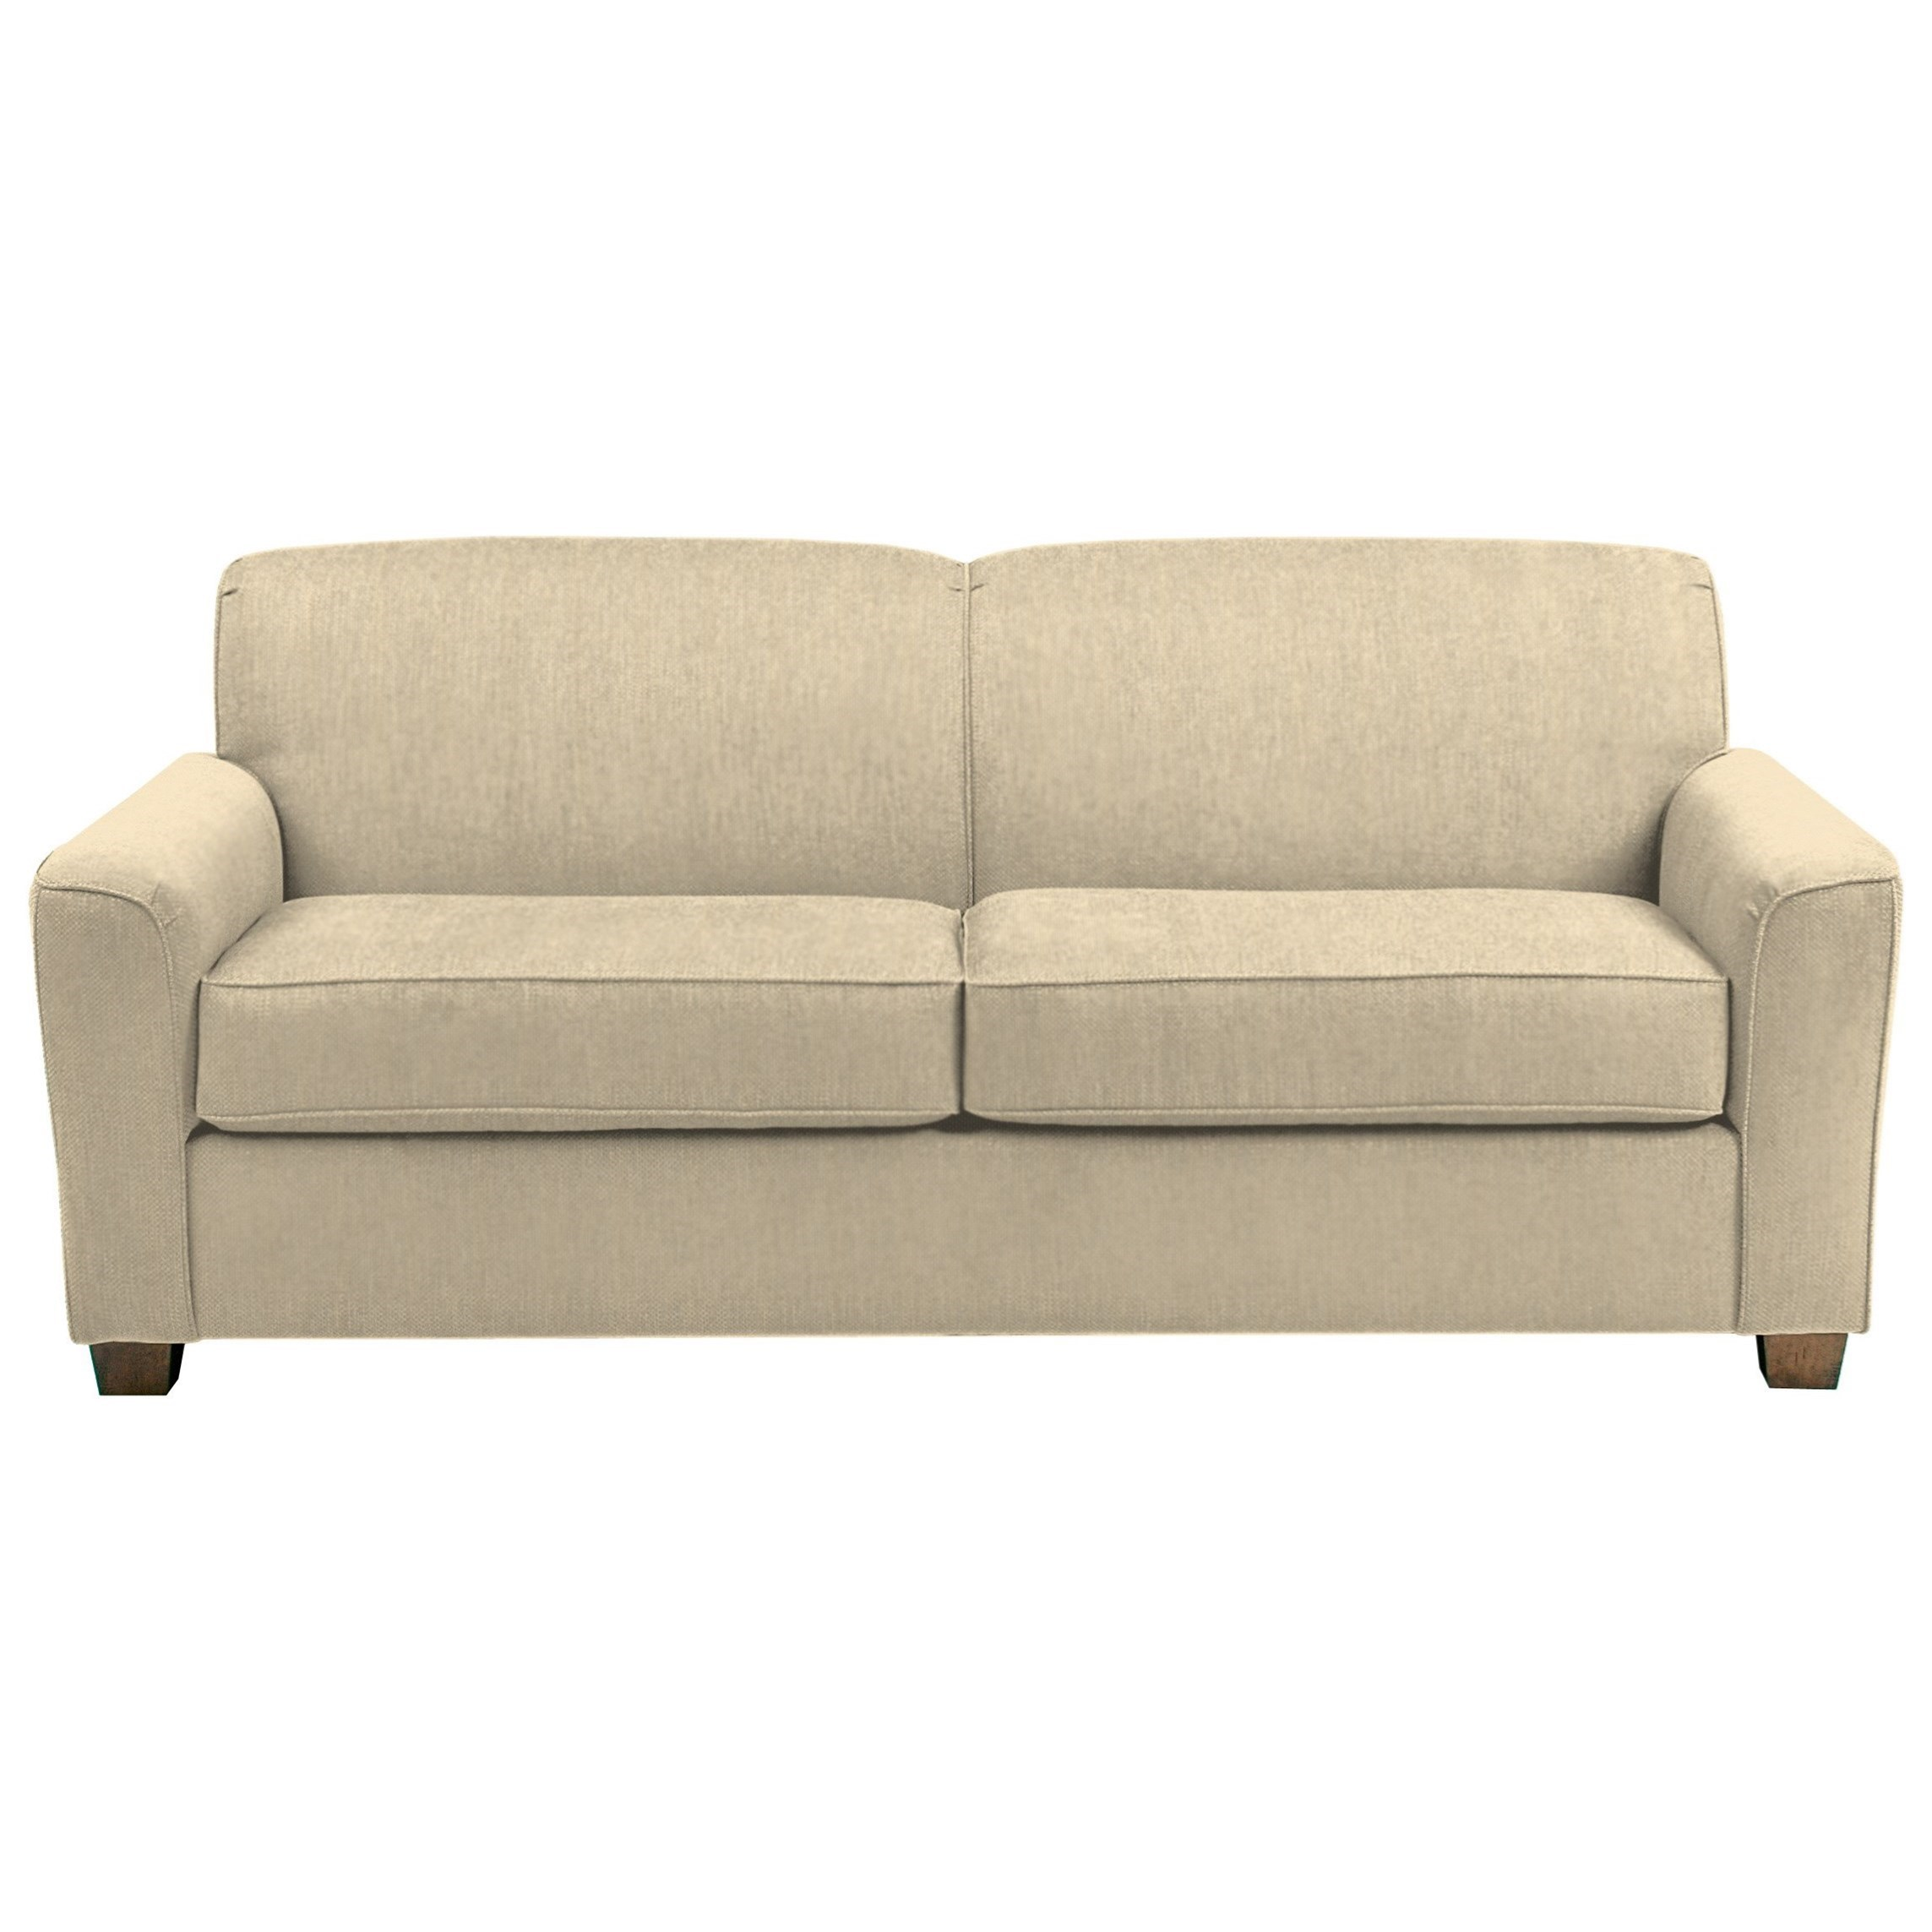 Best Home Furnishings Dinah Queen Sofa Sleeper - Item Number: S16QDP-20027